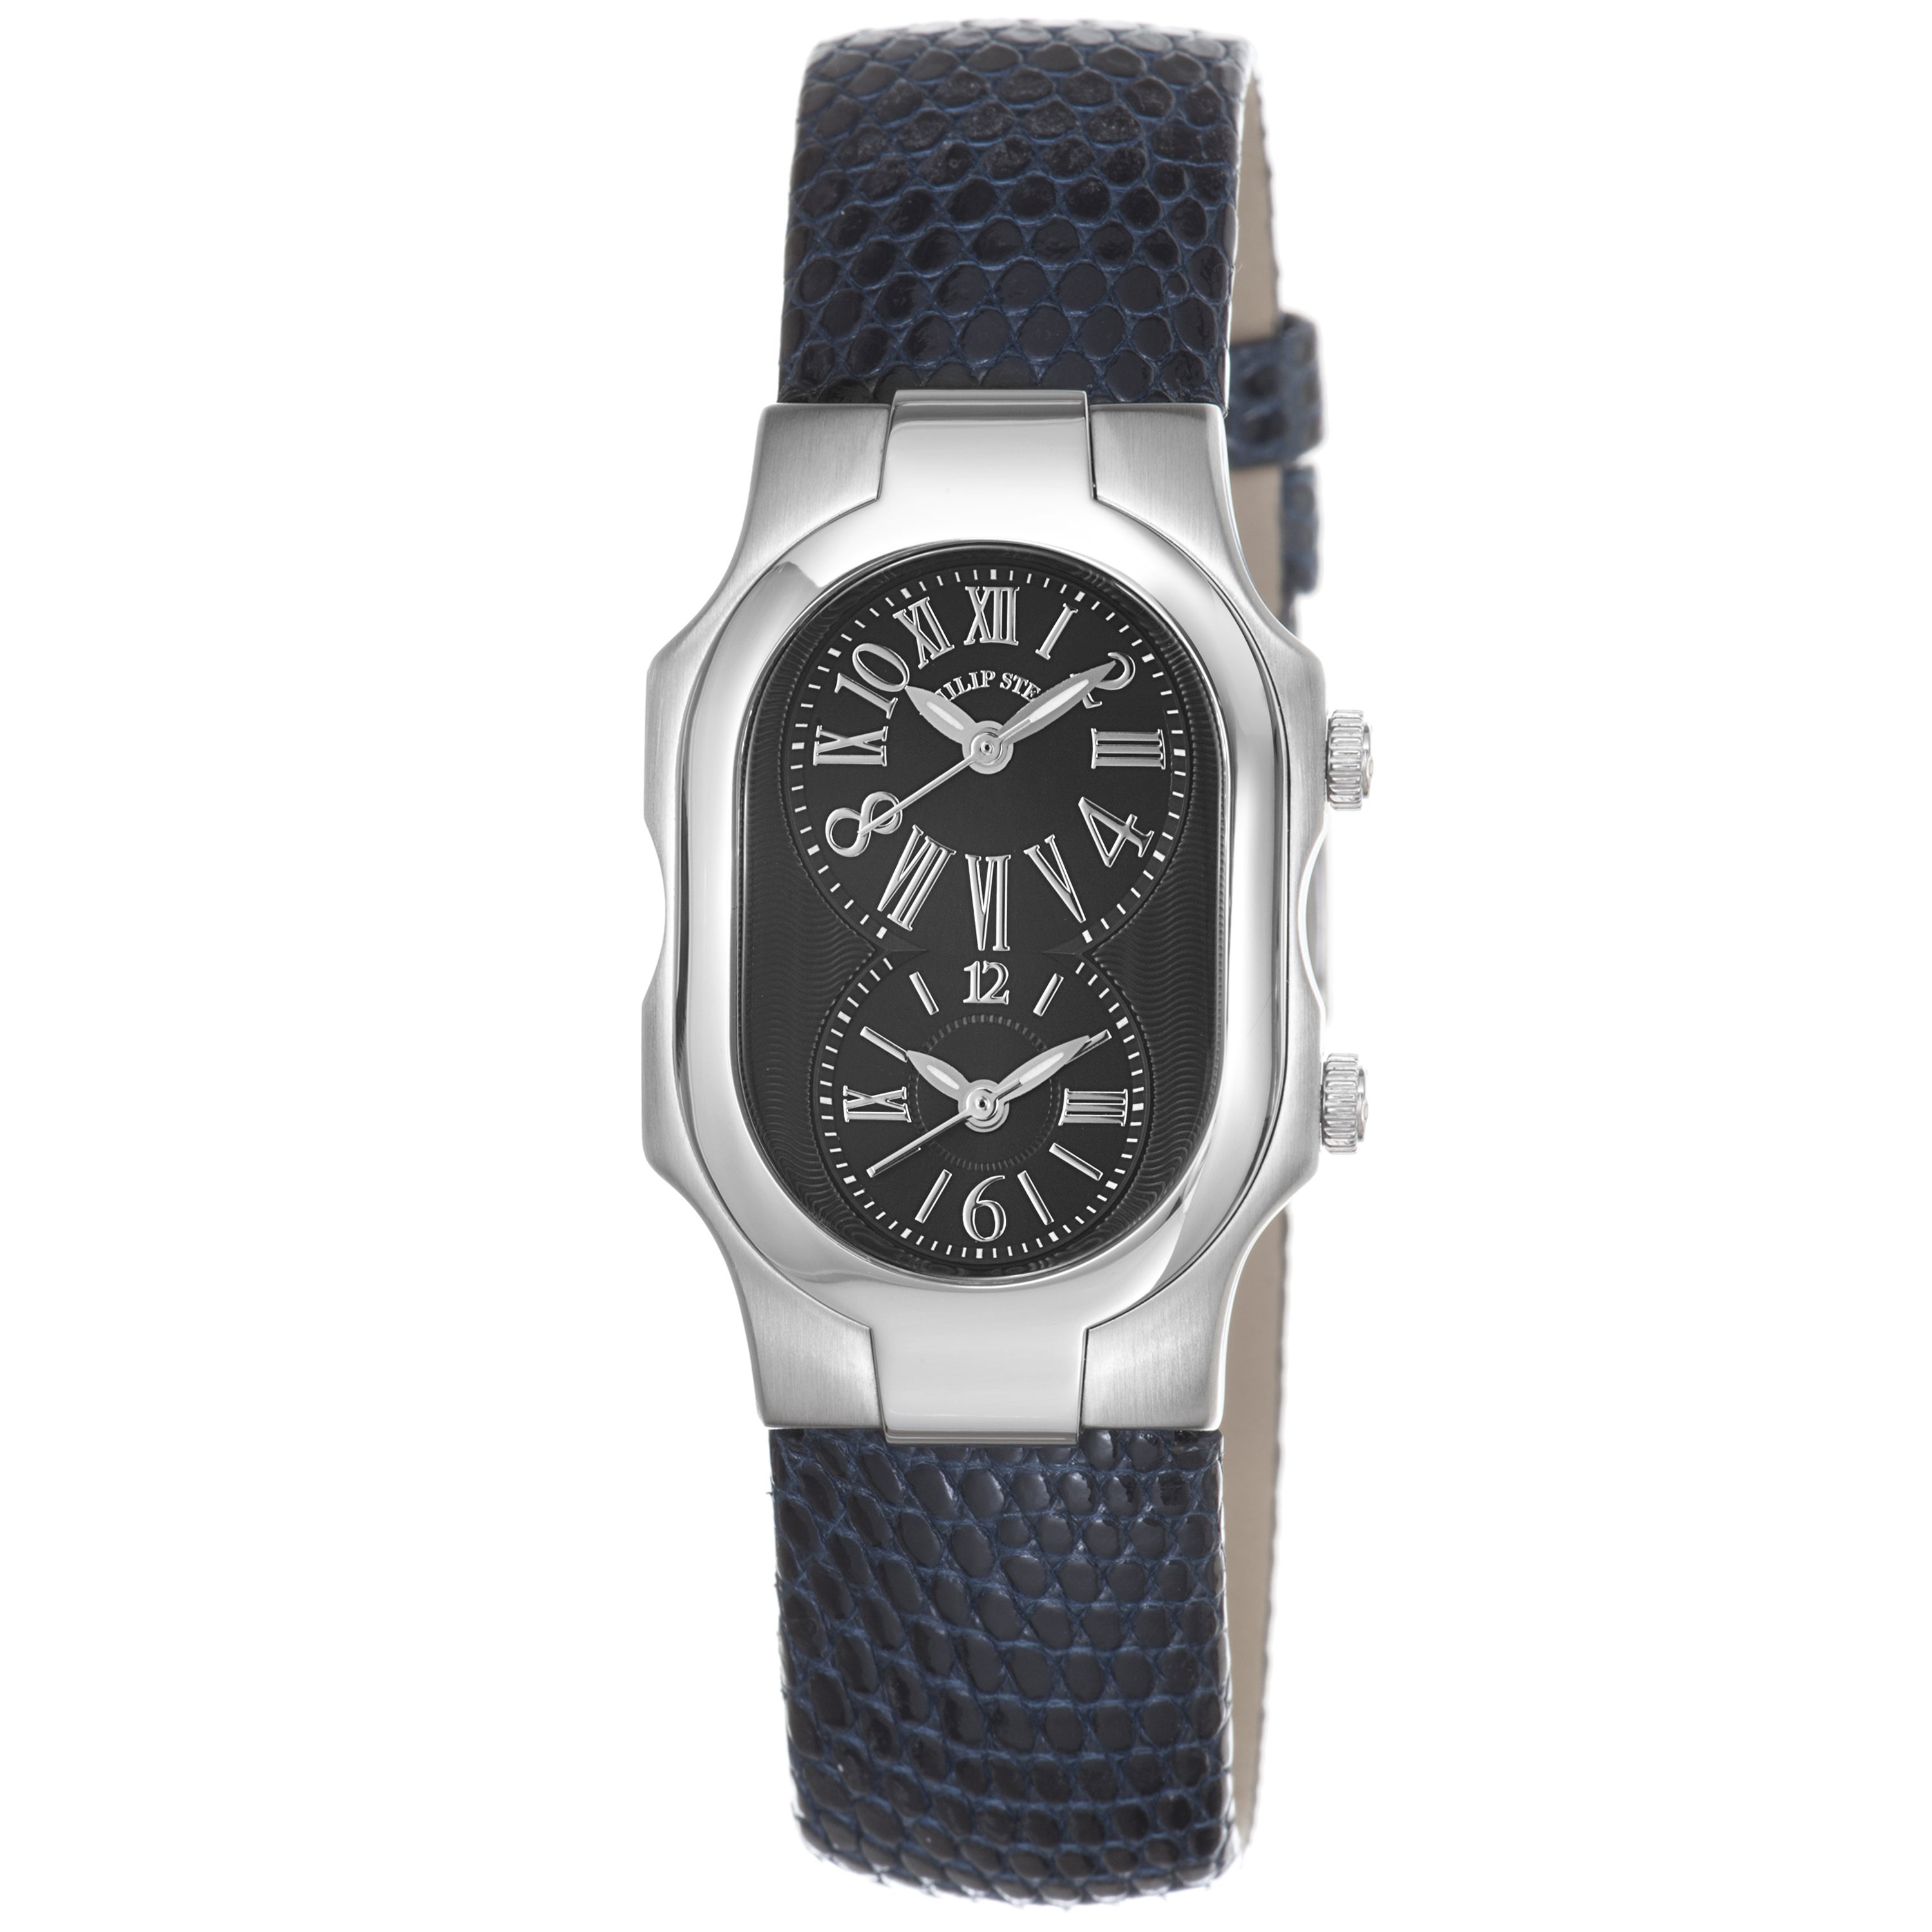 Philip stein women 39 s 39 signature 39 blue leather strap dual time watch 14173818 overstock for Philip stein watches